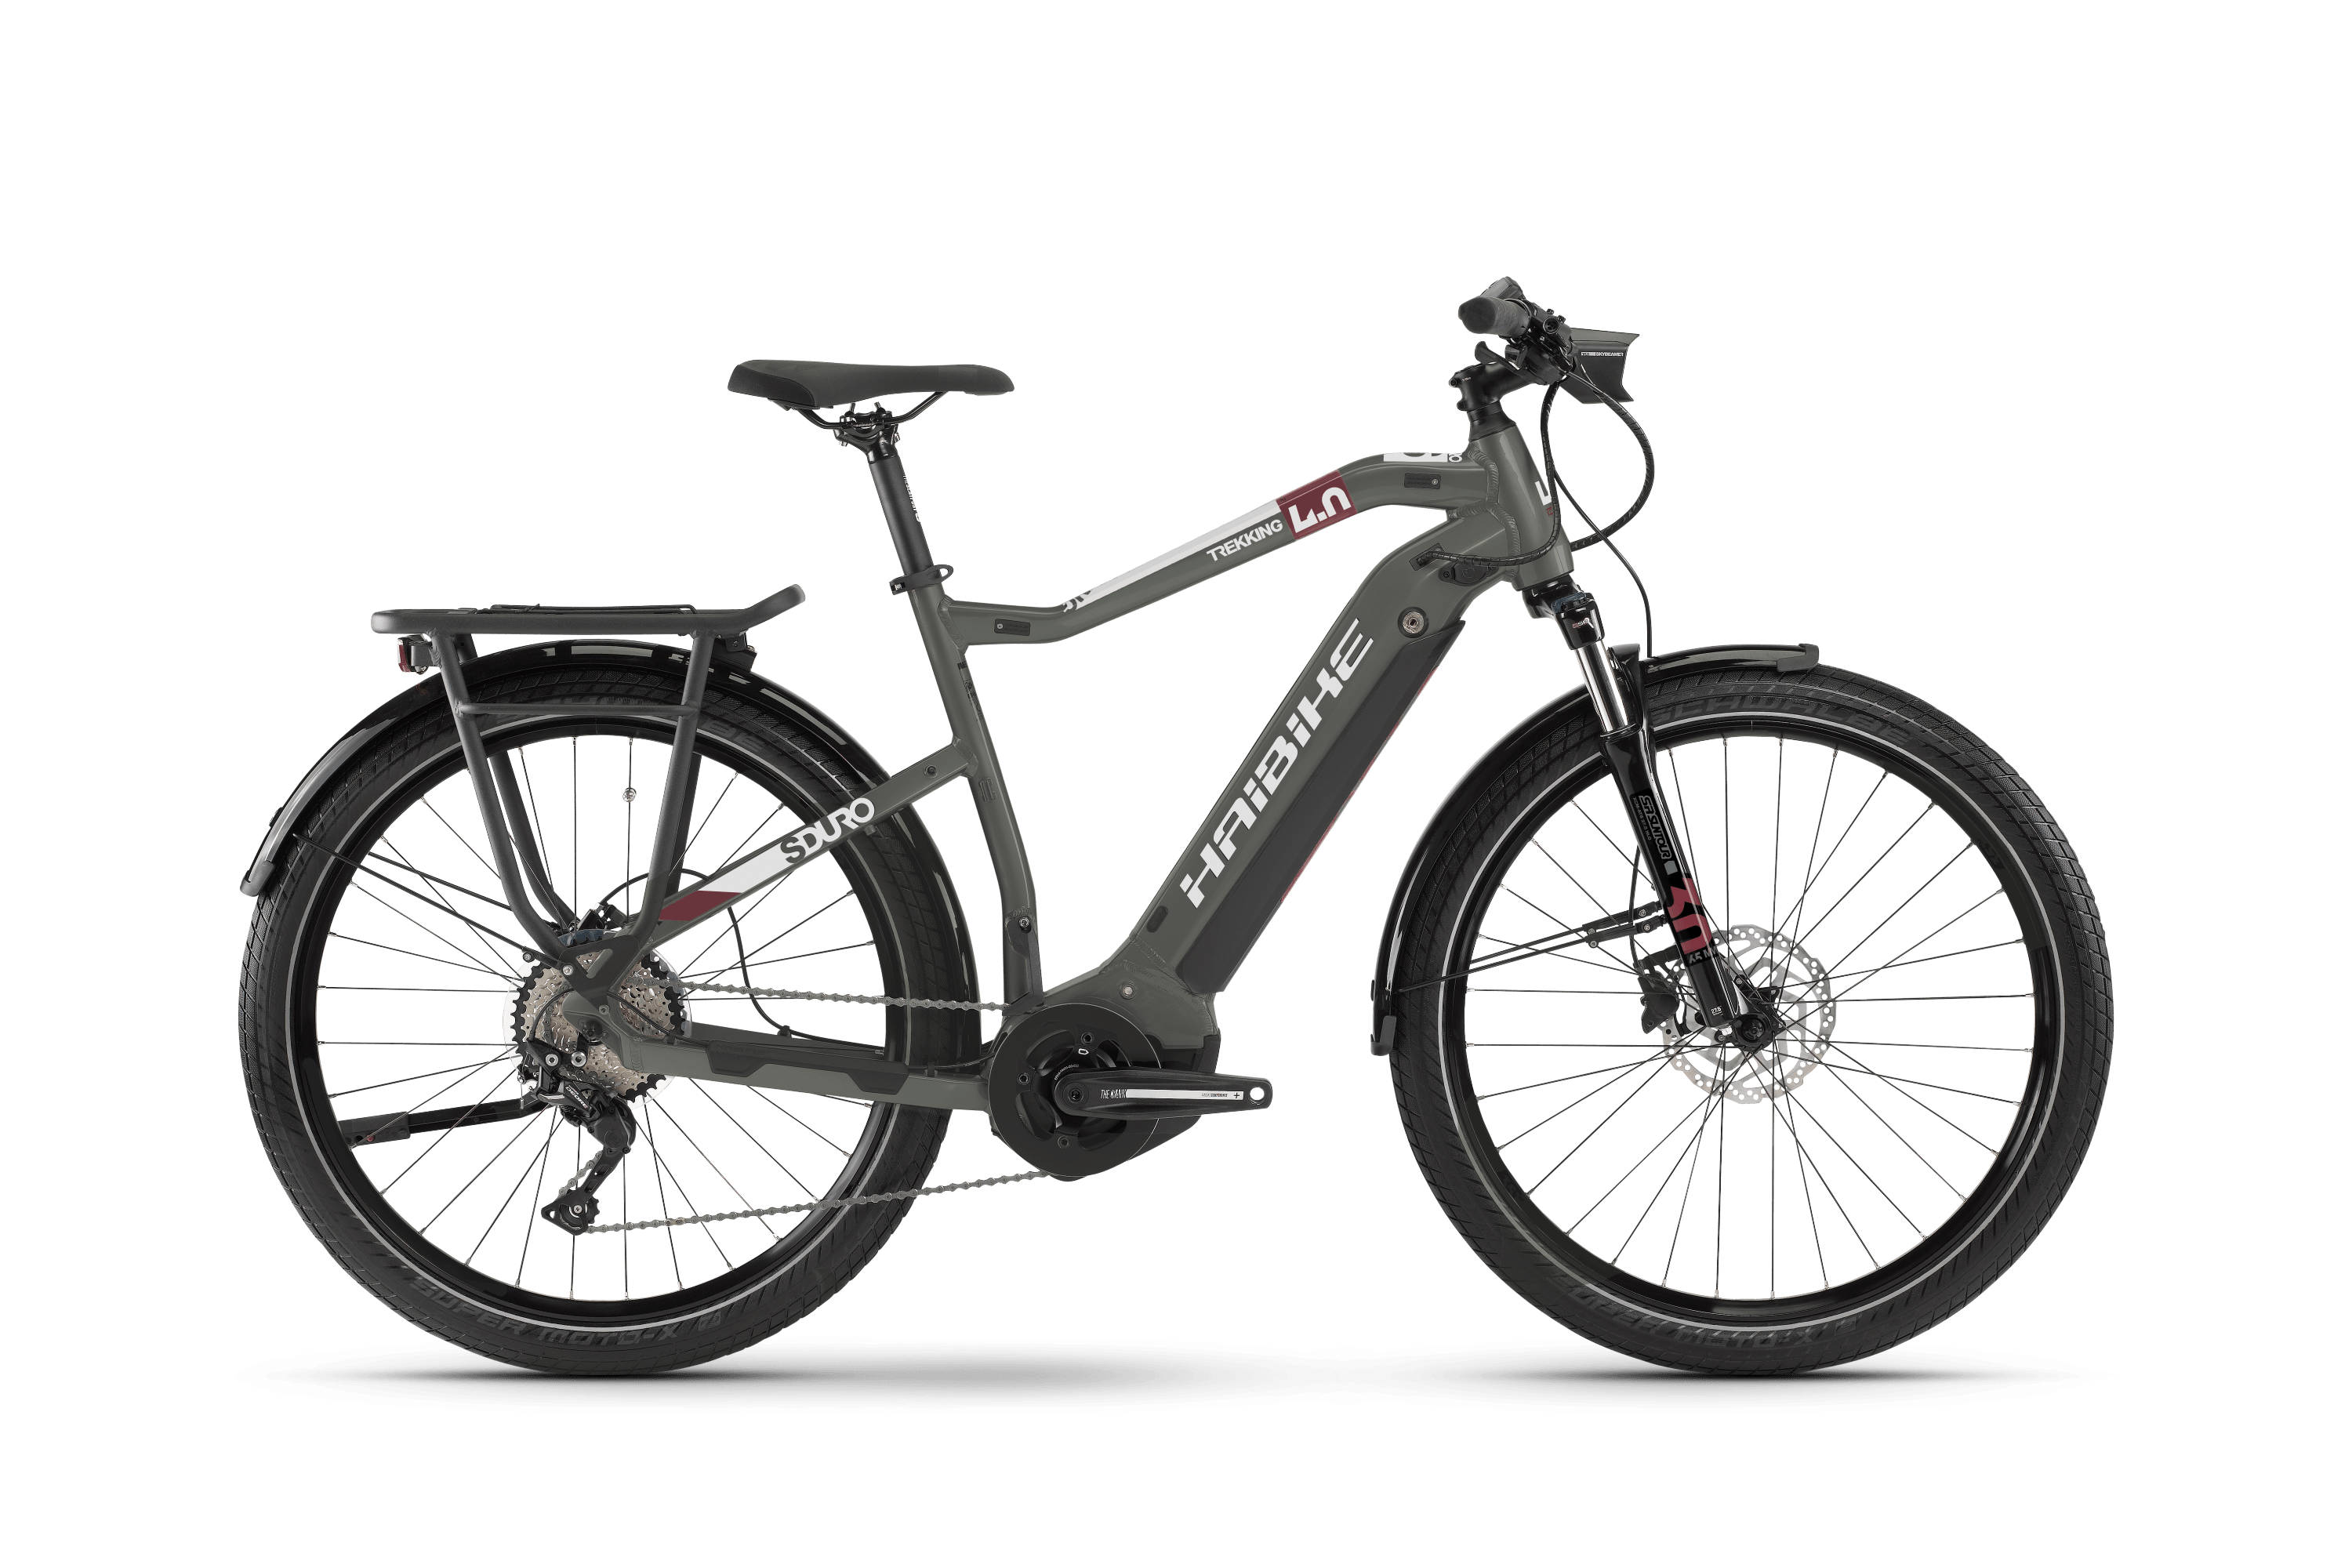 https://w8w5m3f8.stackpathcdn.com/21699/vtc-electrique-haibike-sduro-trekking-40-500wh-cadre-homme.jpg